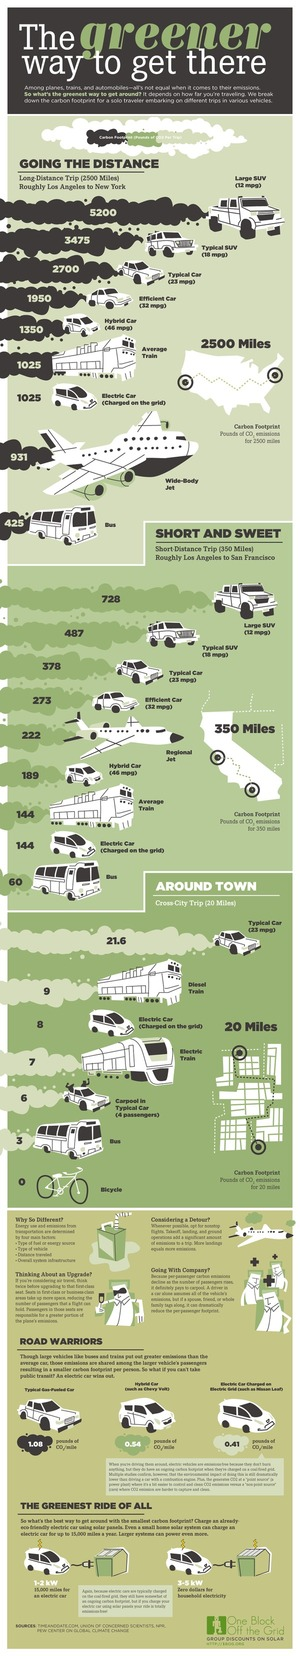 Infographic: The Greener Way to Get There